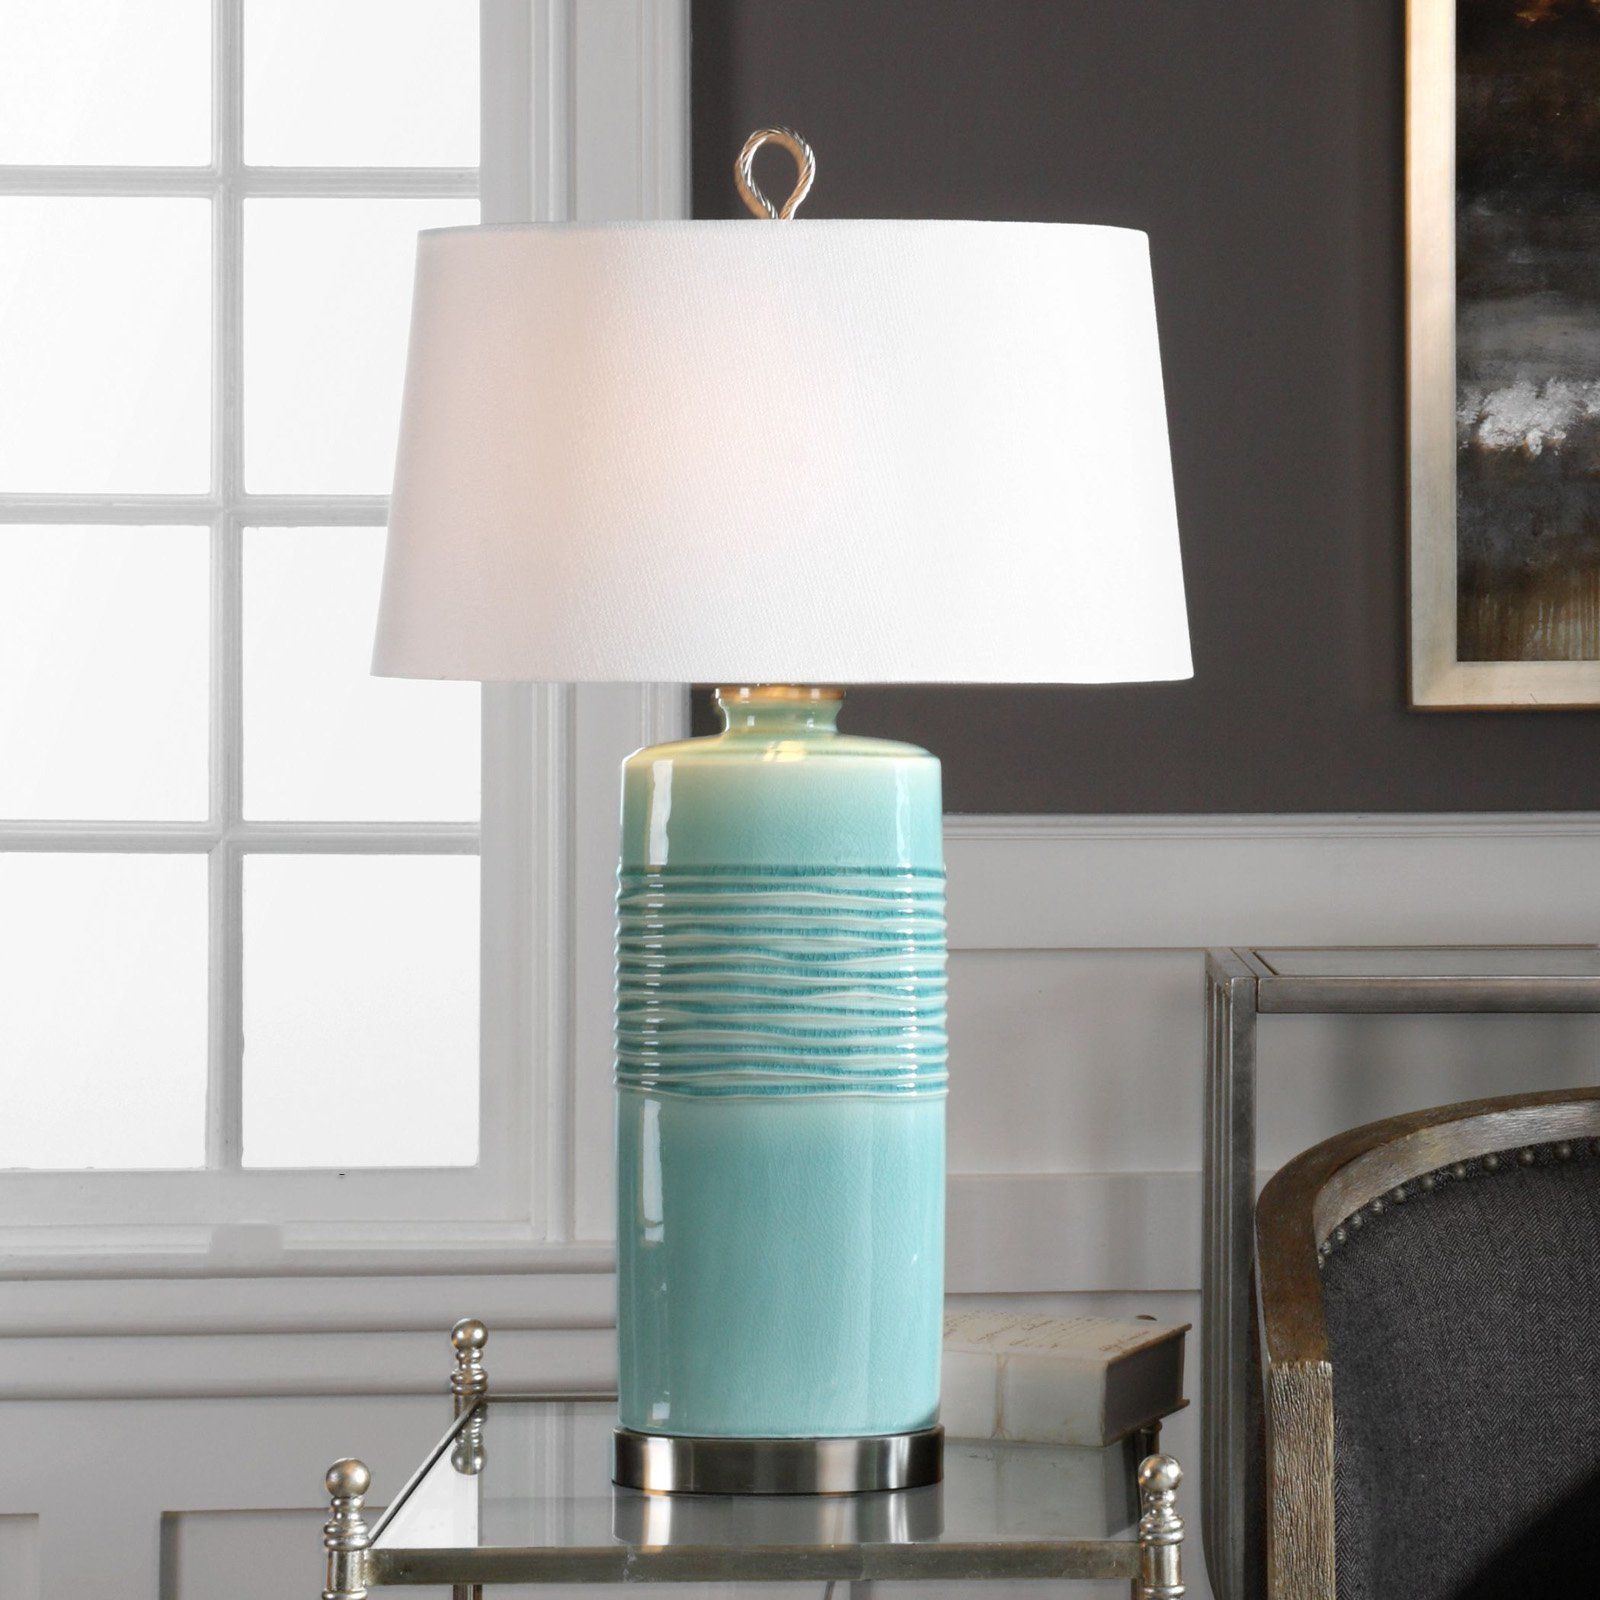 Uttermost Rila Distressed Teal Table Lamp Teal table